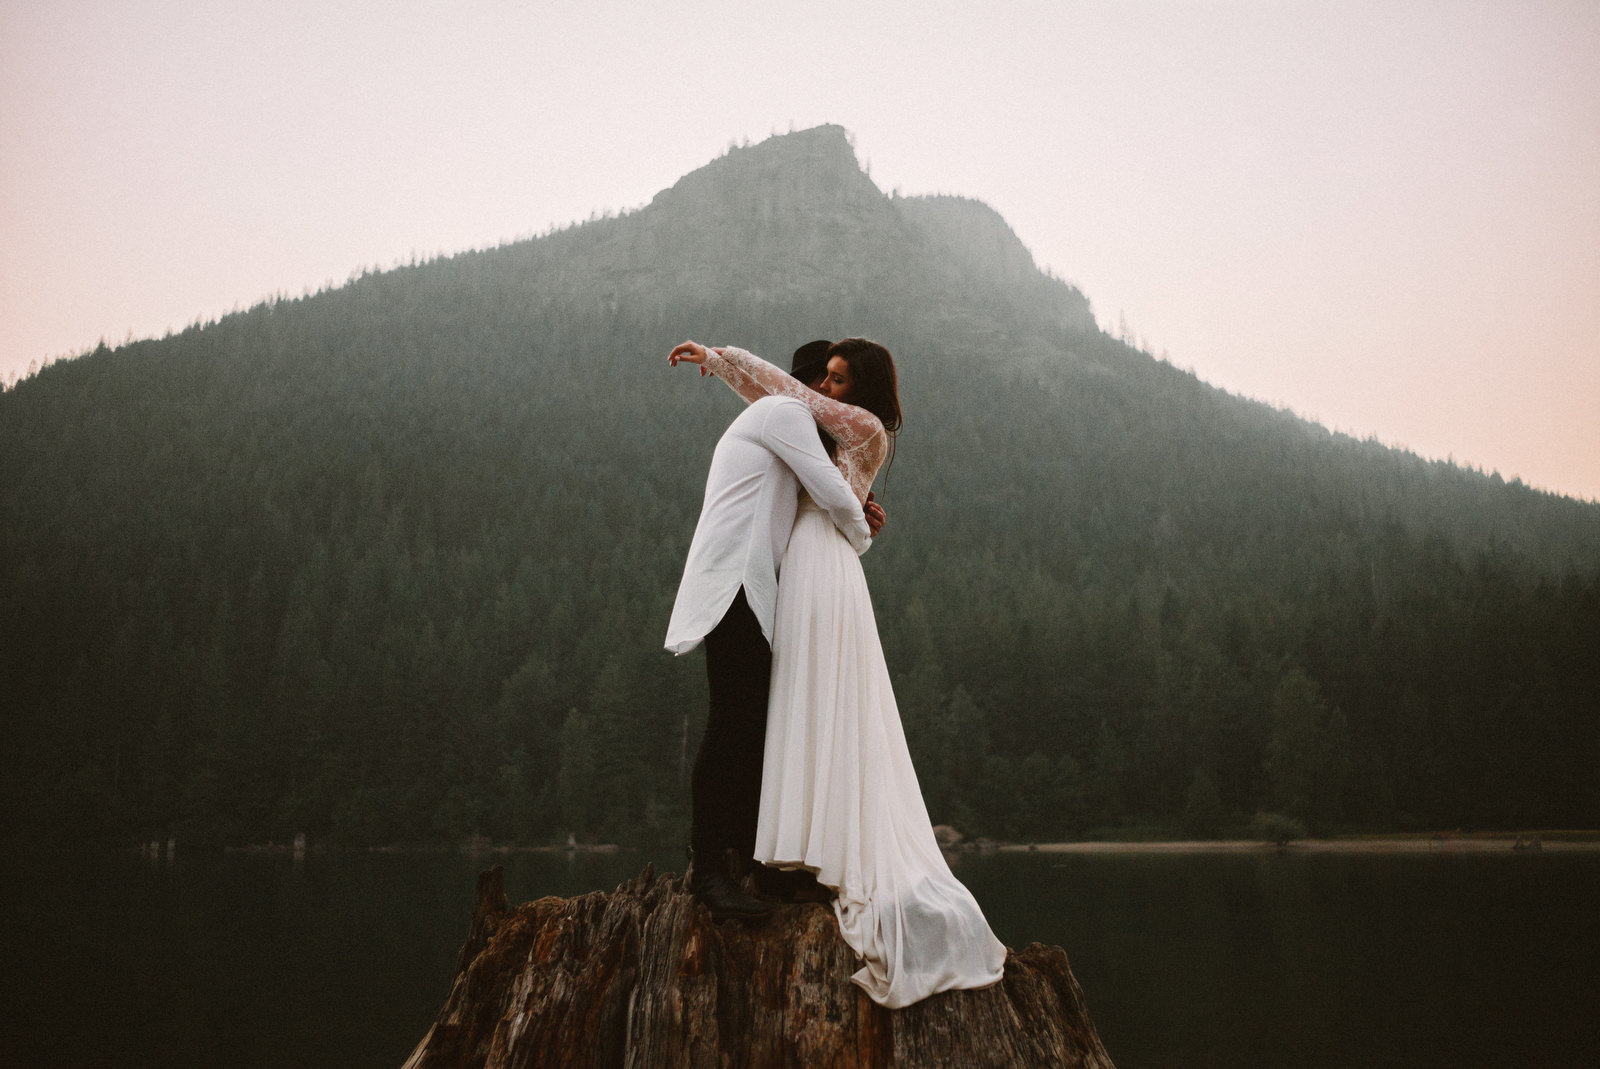 athena-and-camron-seattle-elopement-wedding-benj-haisch-rattlesnake-lake-christian-couple-goals91